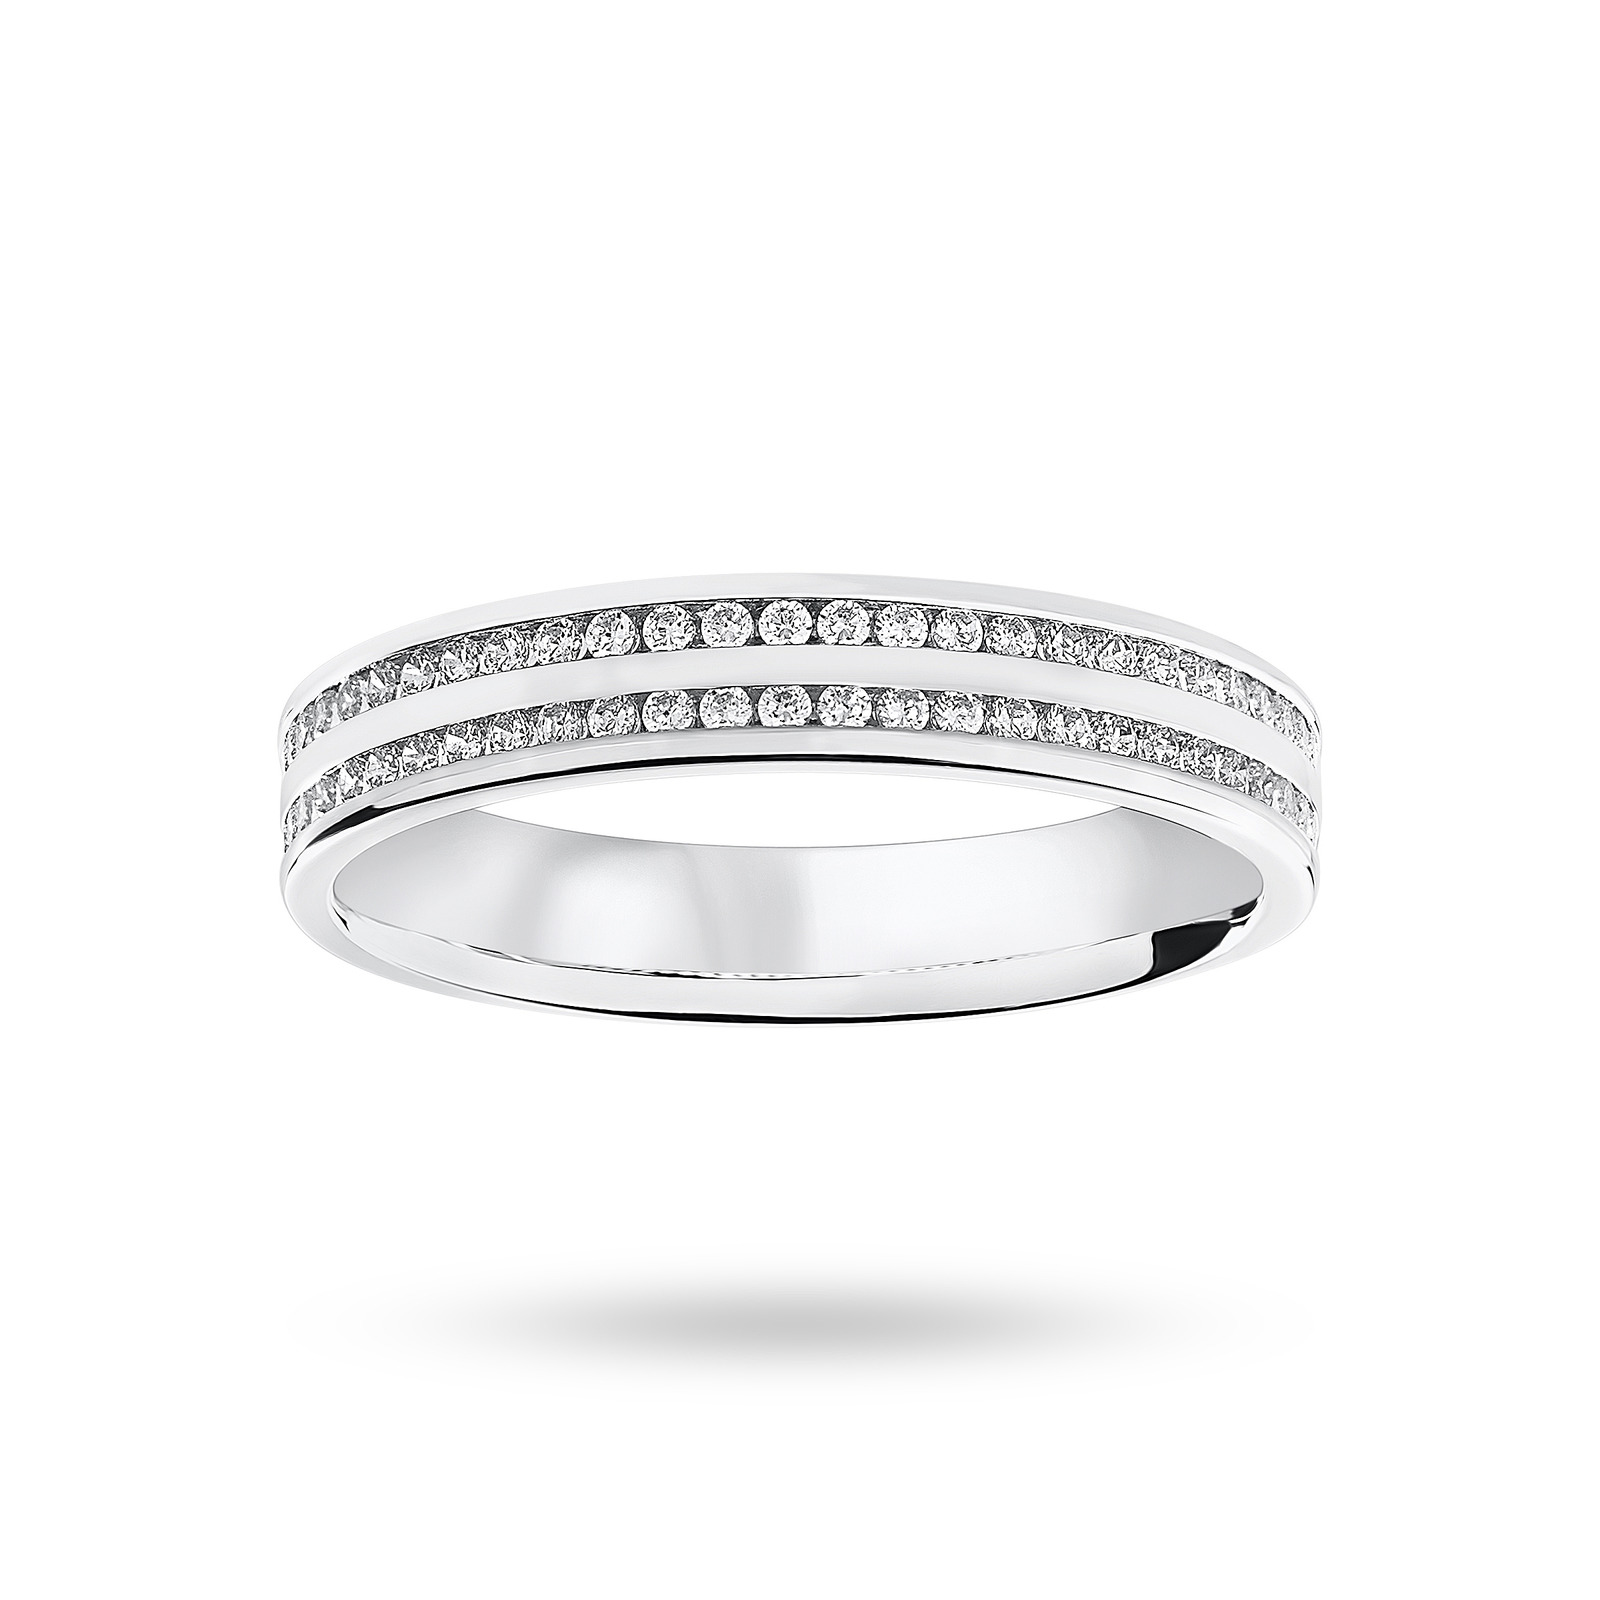 Platinum 0.50 Carat Brilliant Cut 2 Row Channel Set Half Eternity Ring